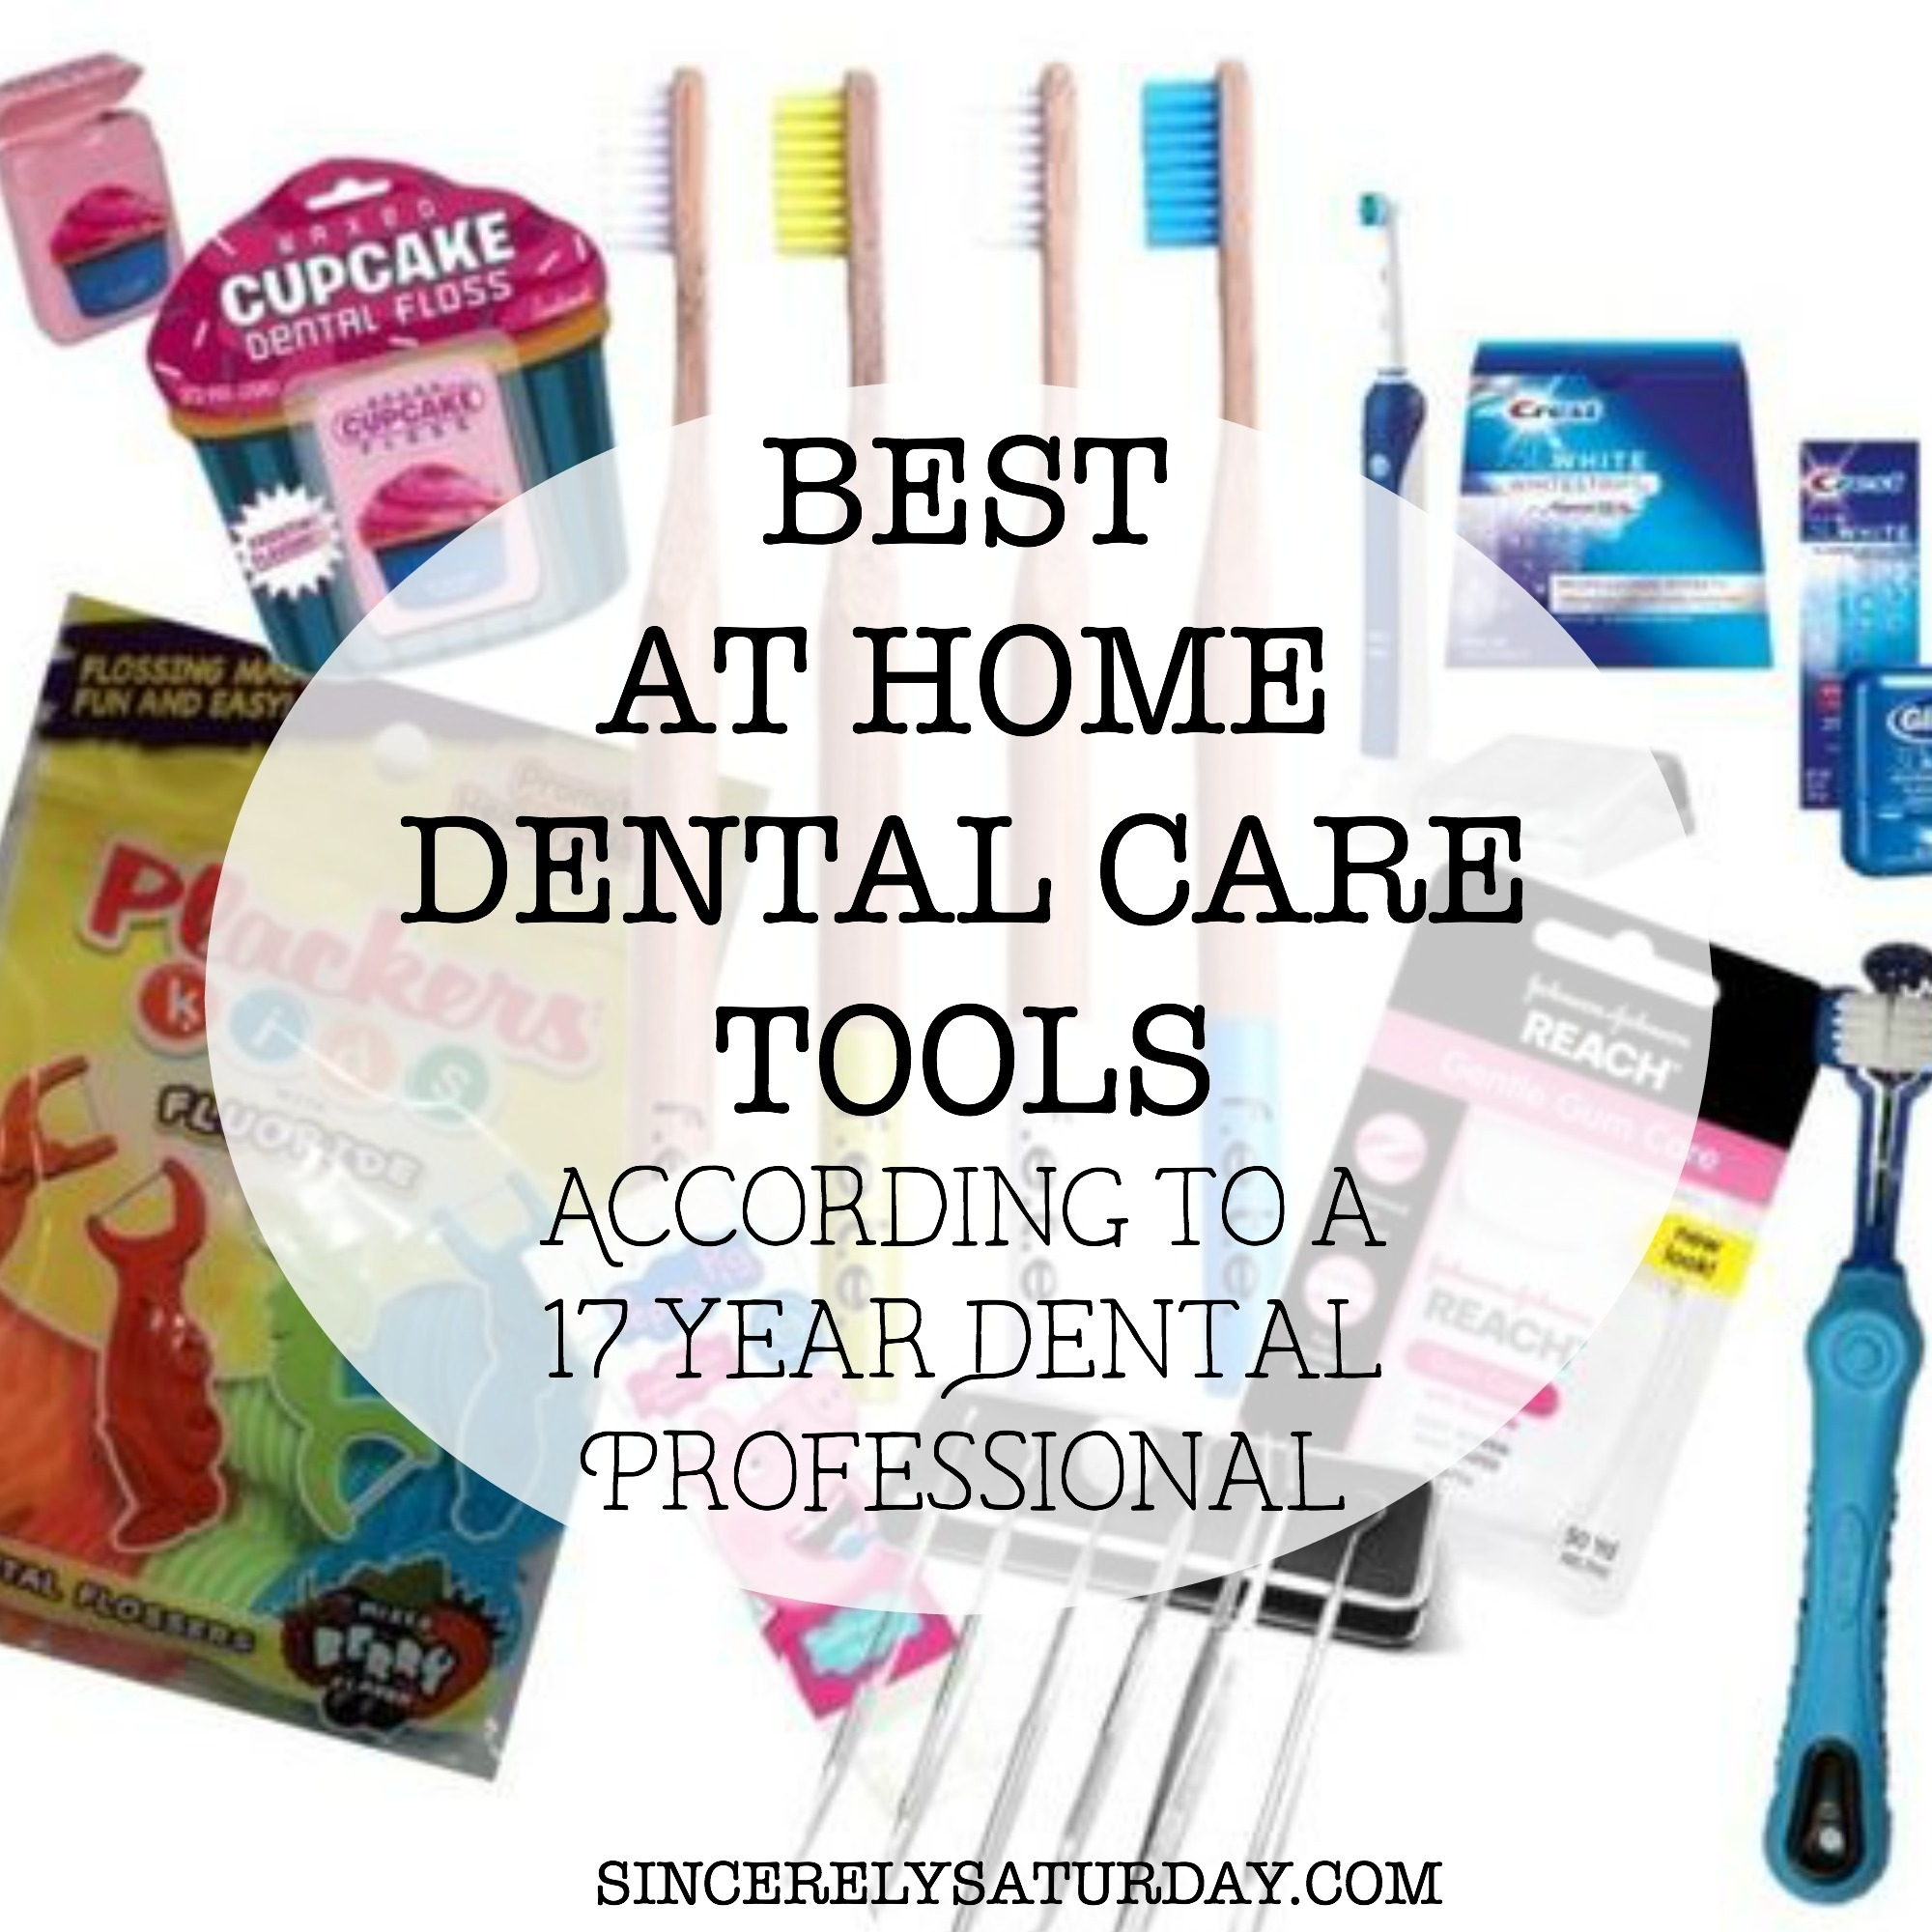 BEST AT HOME DENTAL TOOLS ACCORDING TO A 17 YEAR PROFESSIONAL